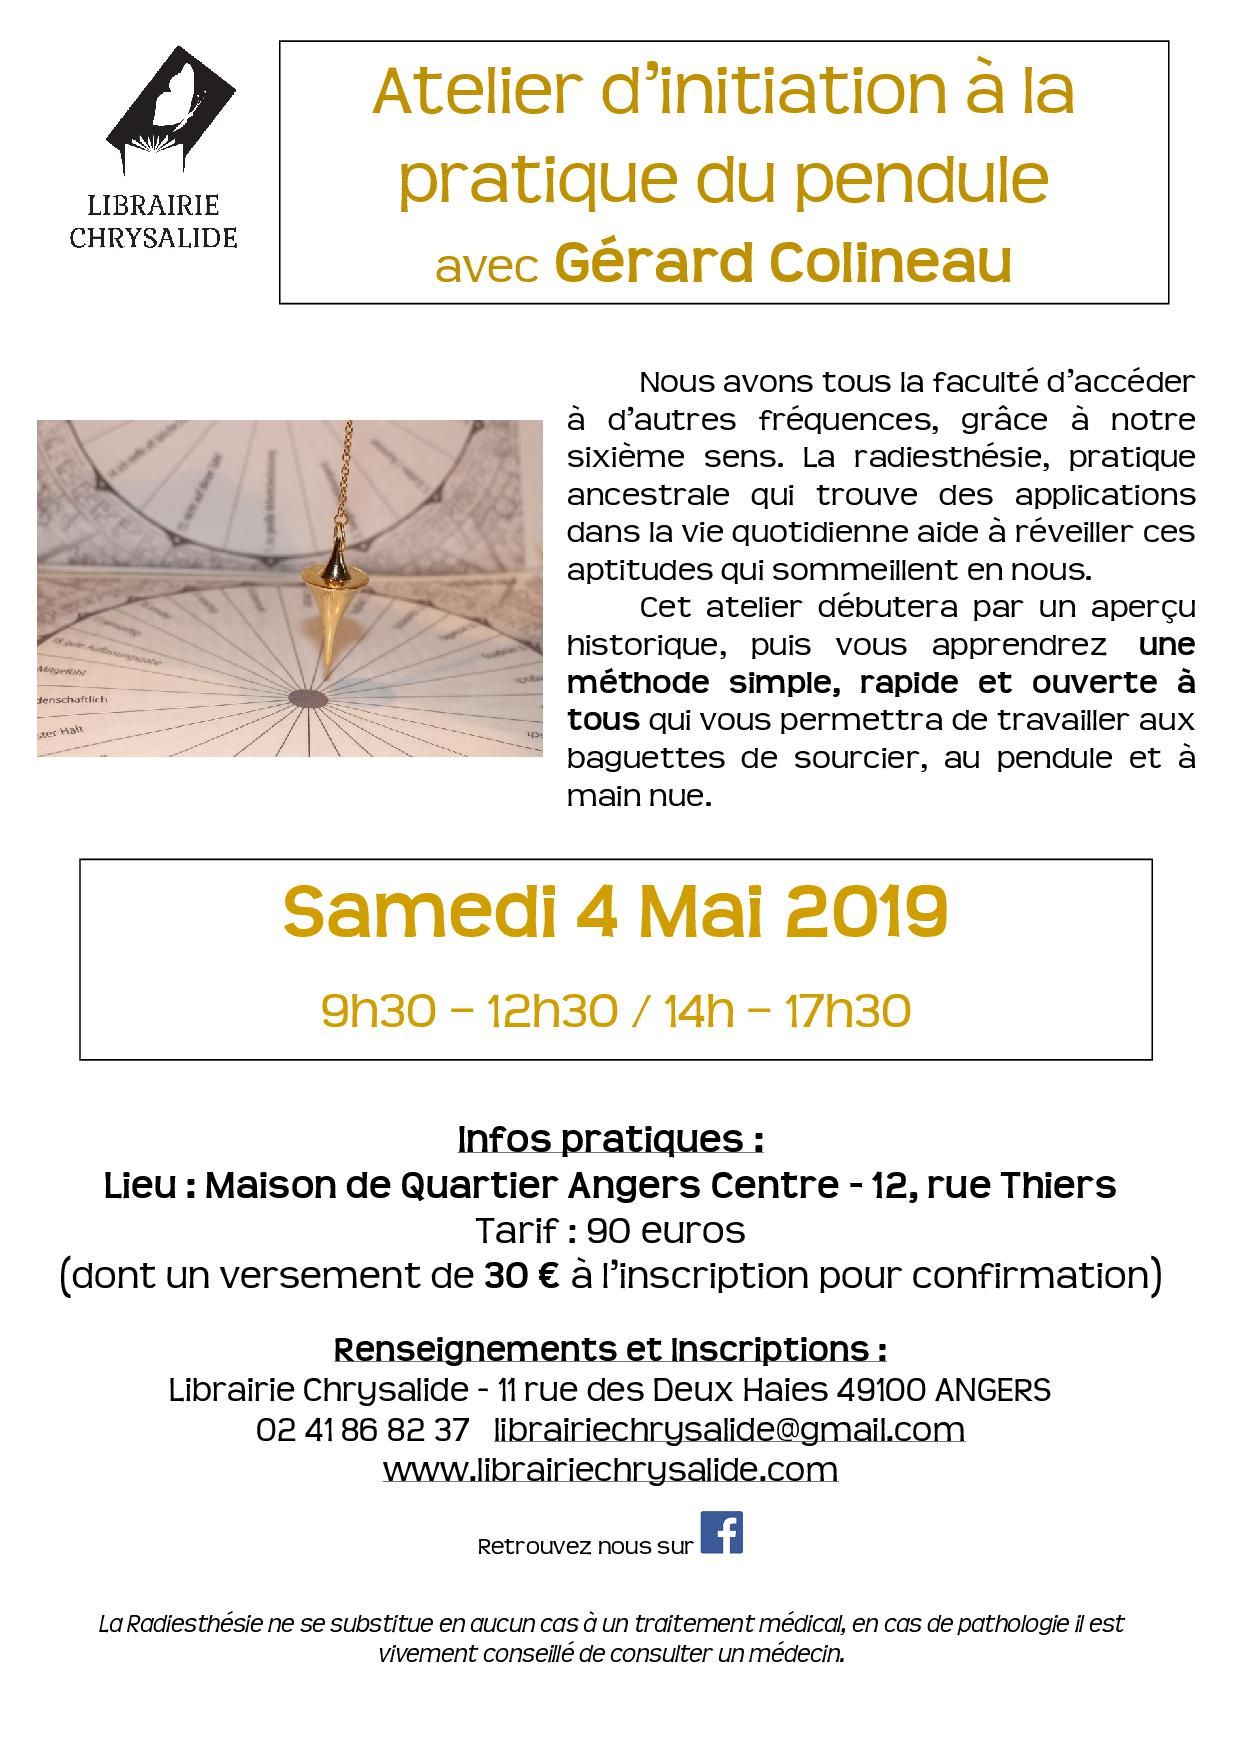 ATELIER D'INITIATION A LA PRATIQUE DU PENDULE